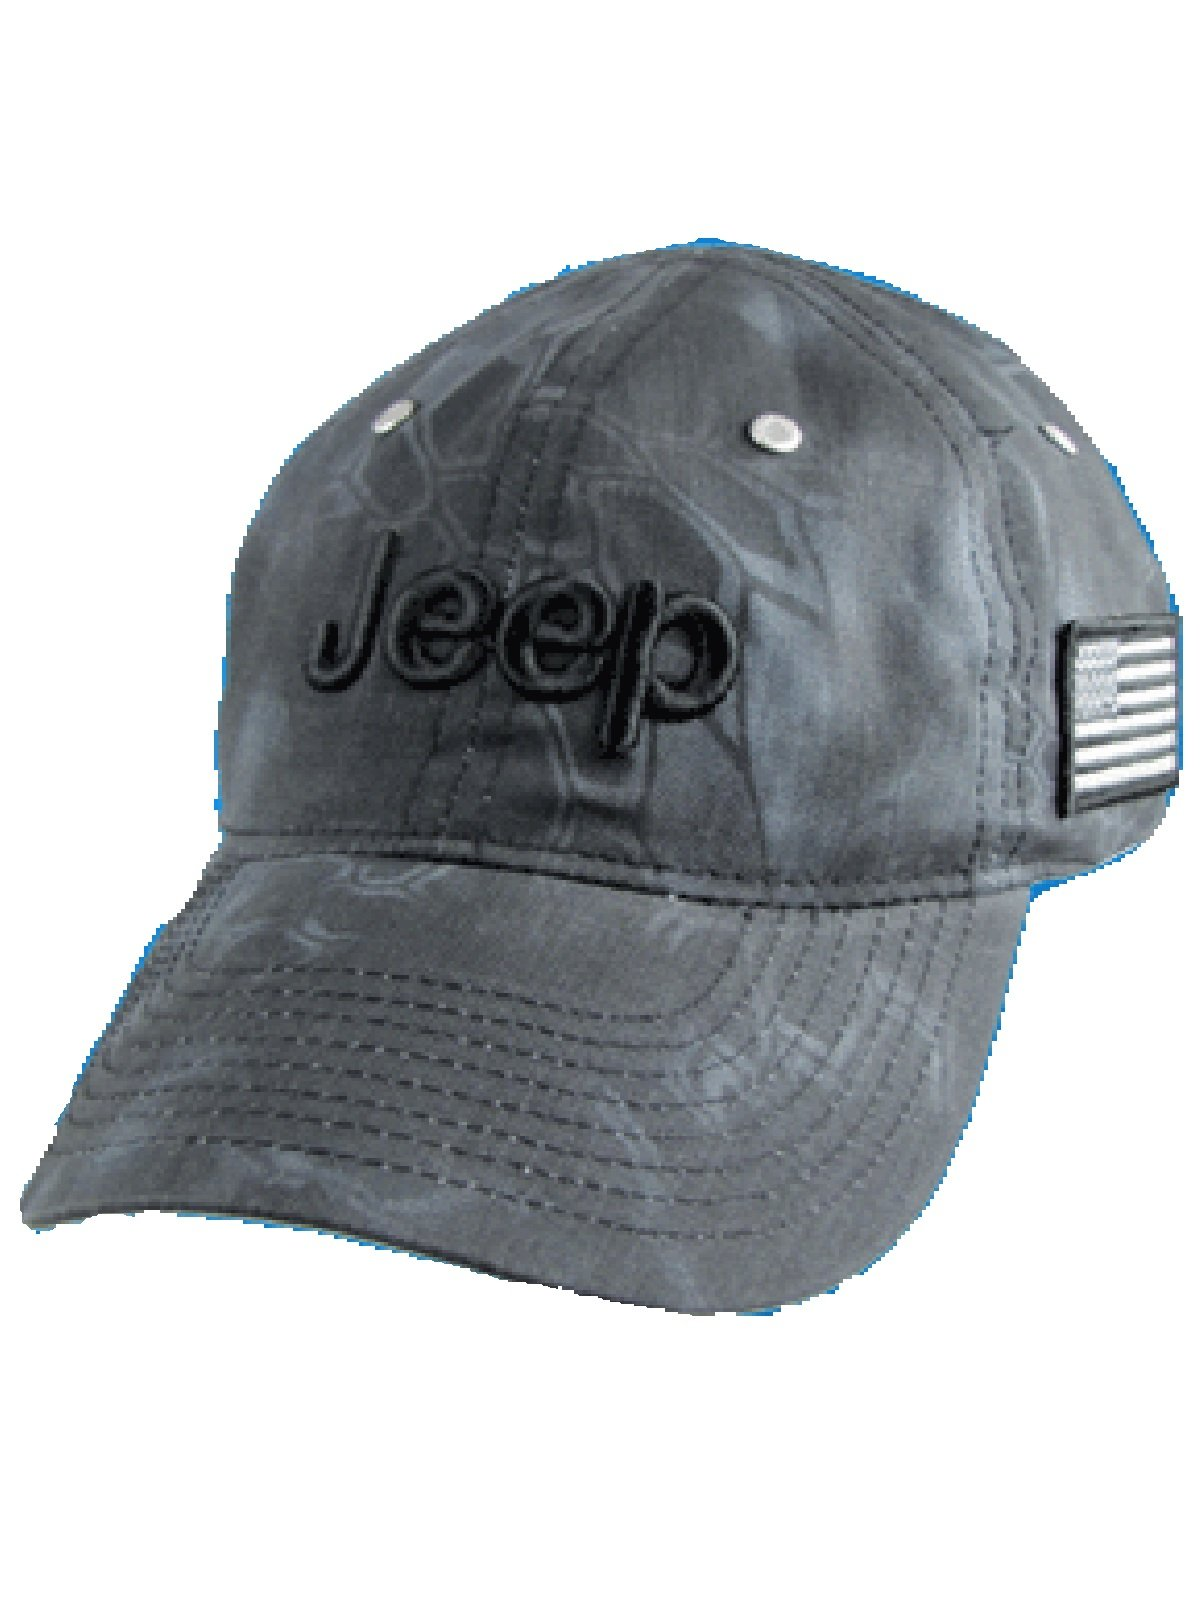 Jeep Charcoal Typhon Camo Cap by Jeep (Image #1)